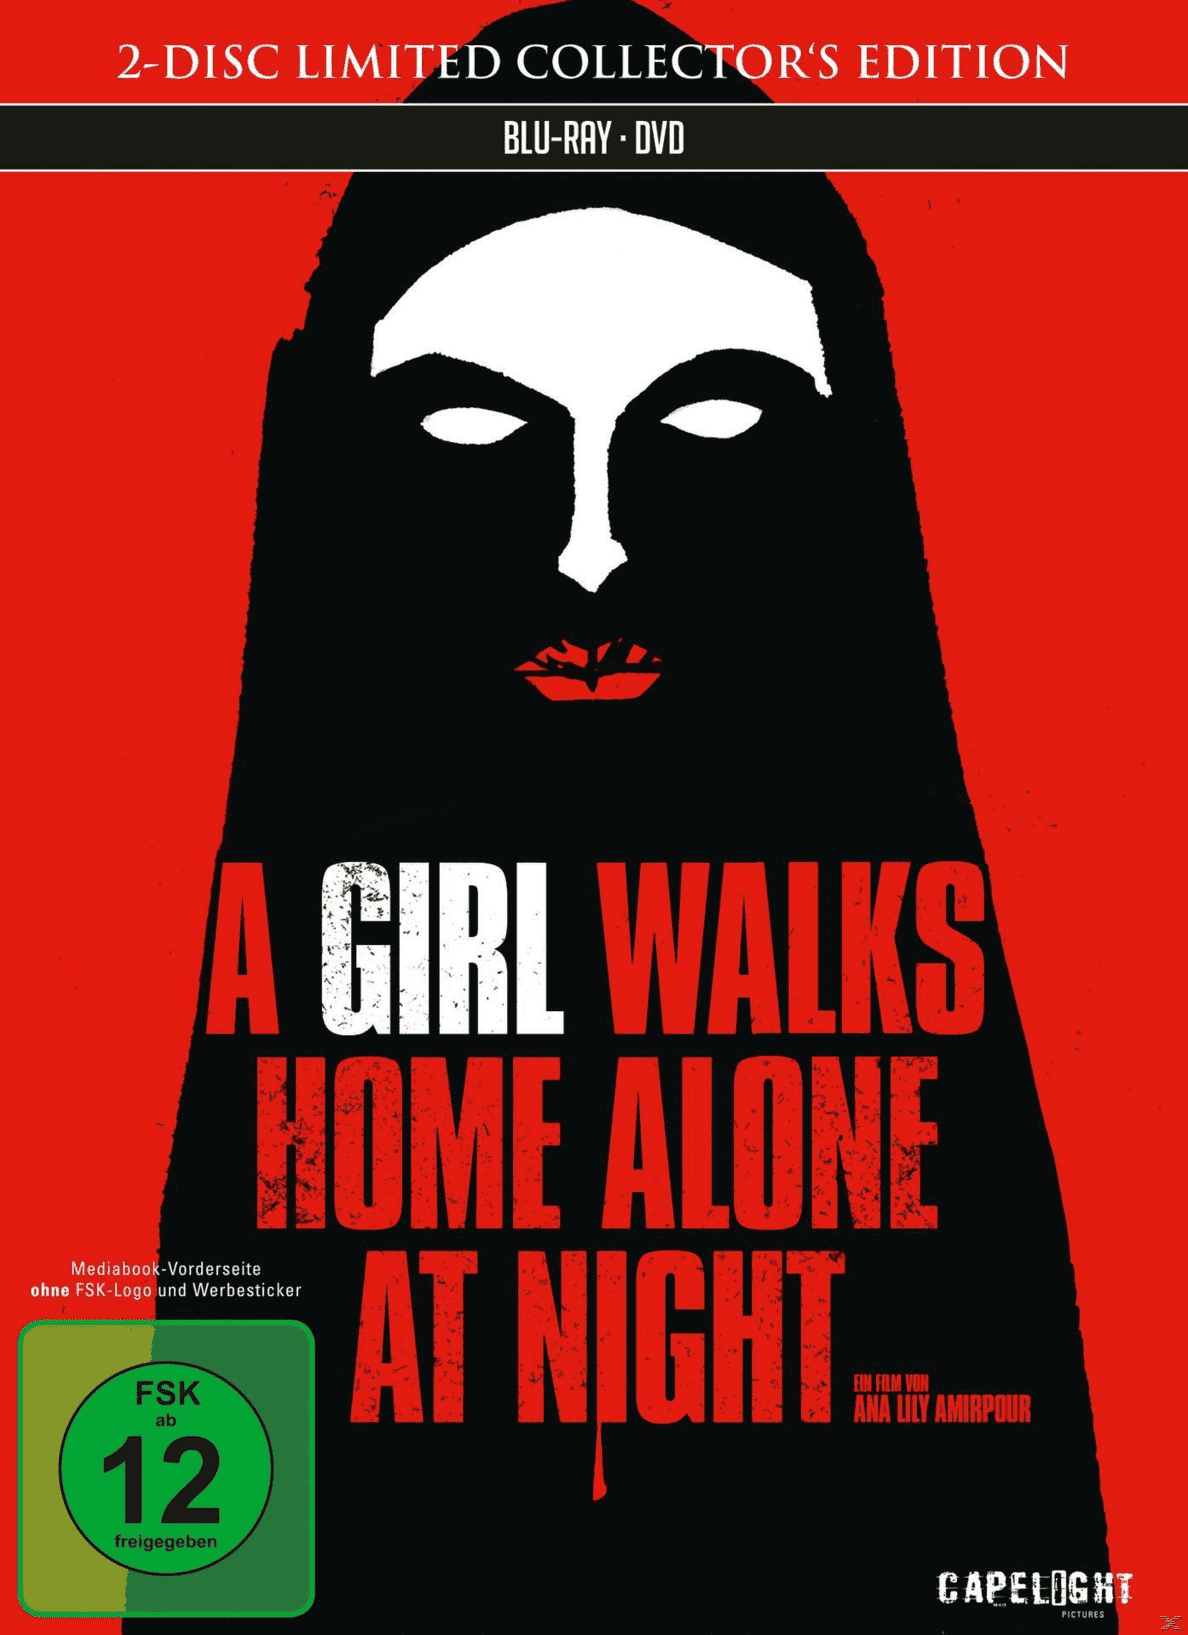 A Girl Walks Home Alone at Night auf Blu-ray + DVD